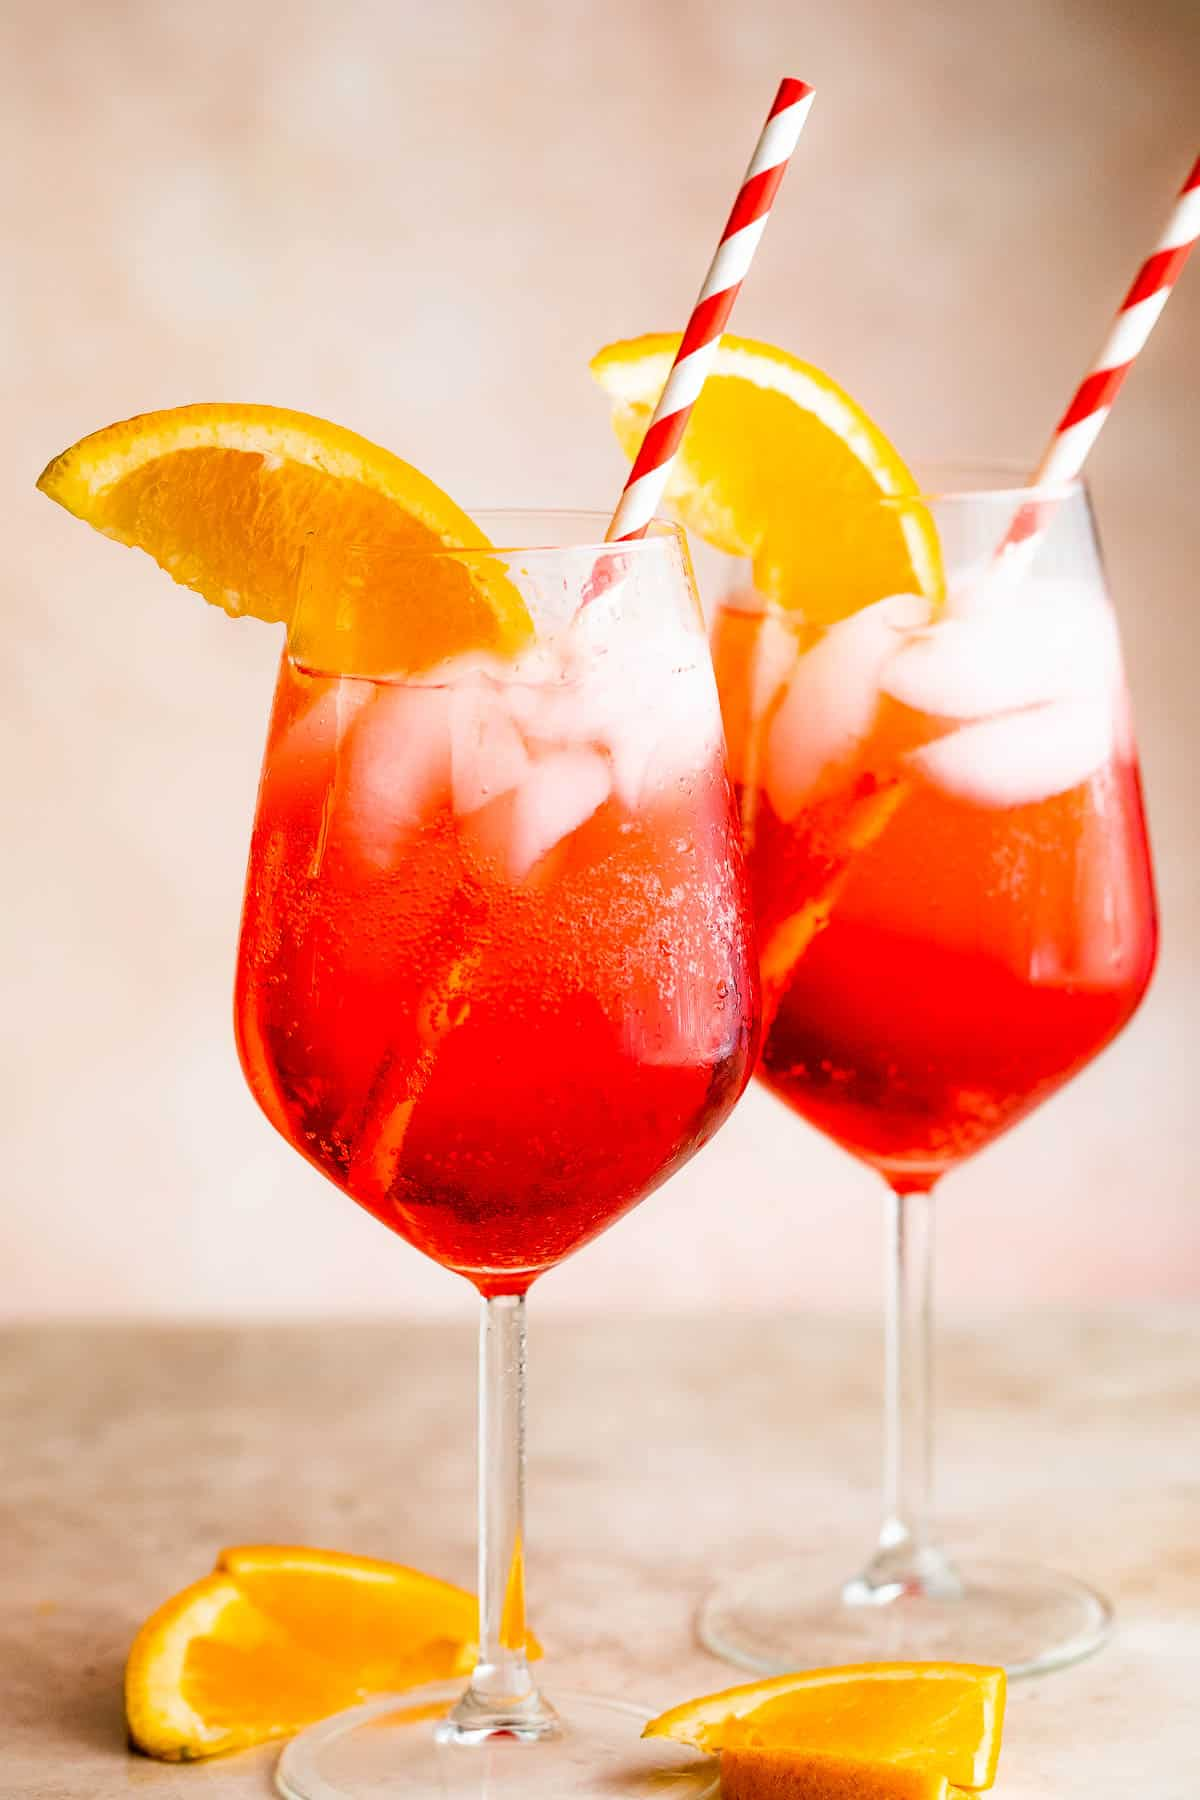 Two tall stemmed glasses with Campari Spritz served with a red and white straw